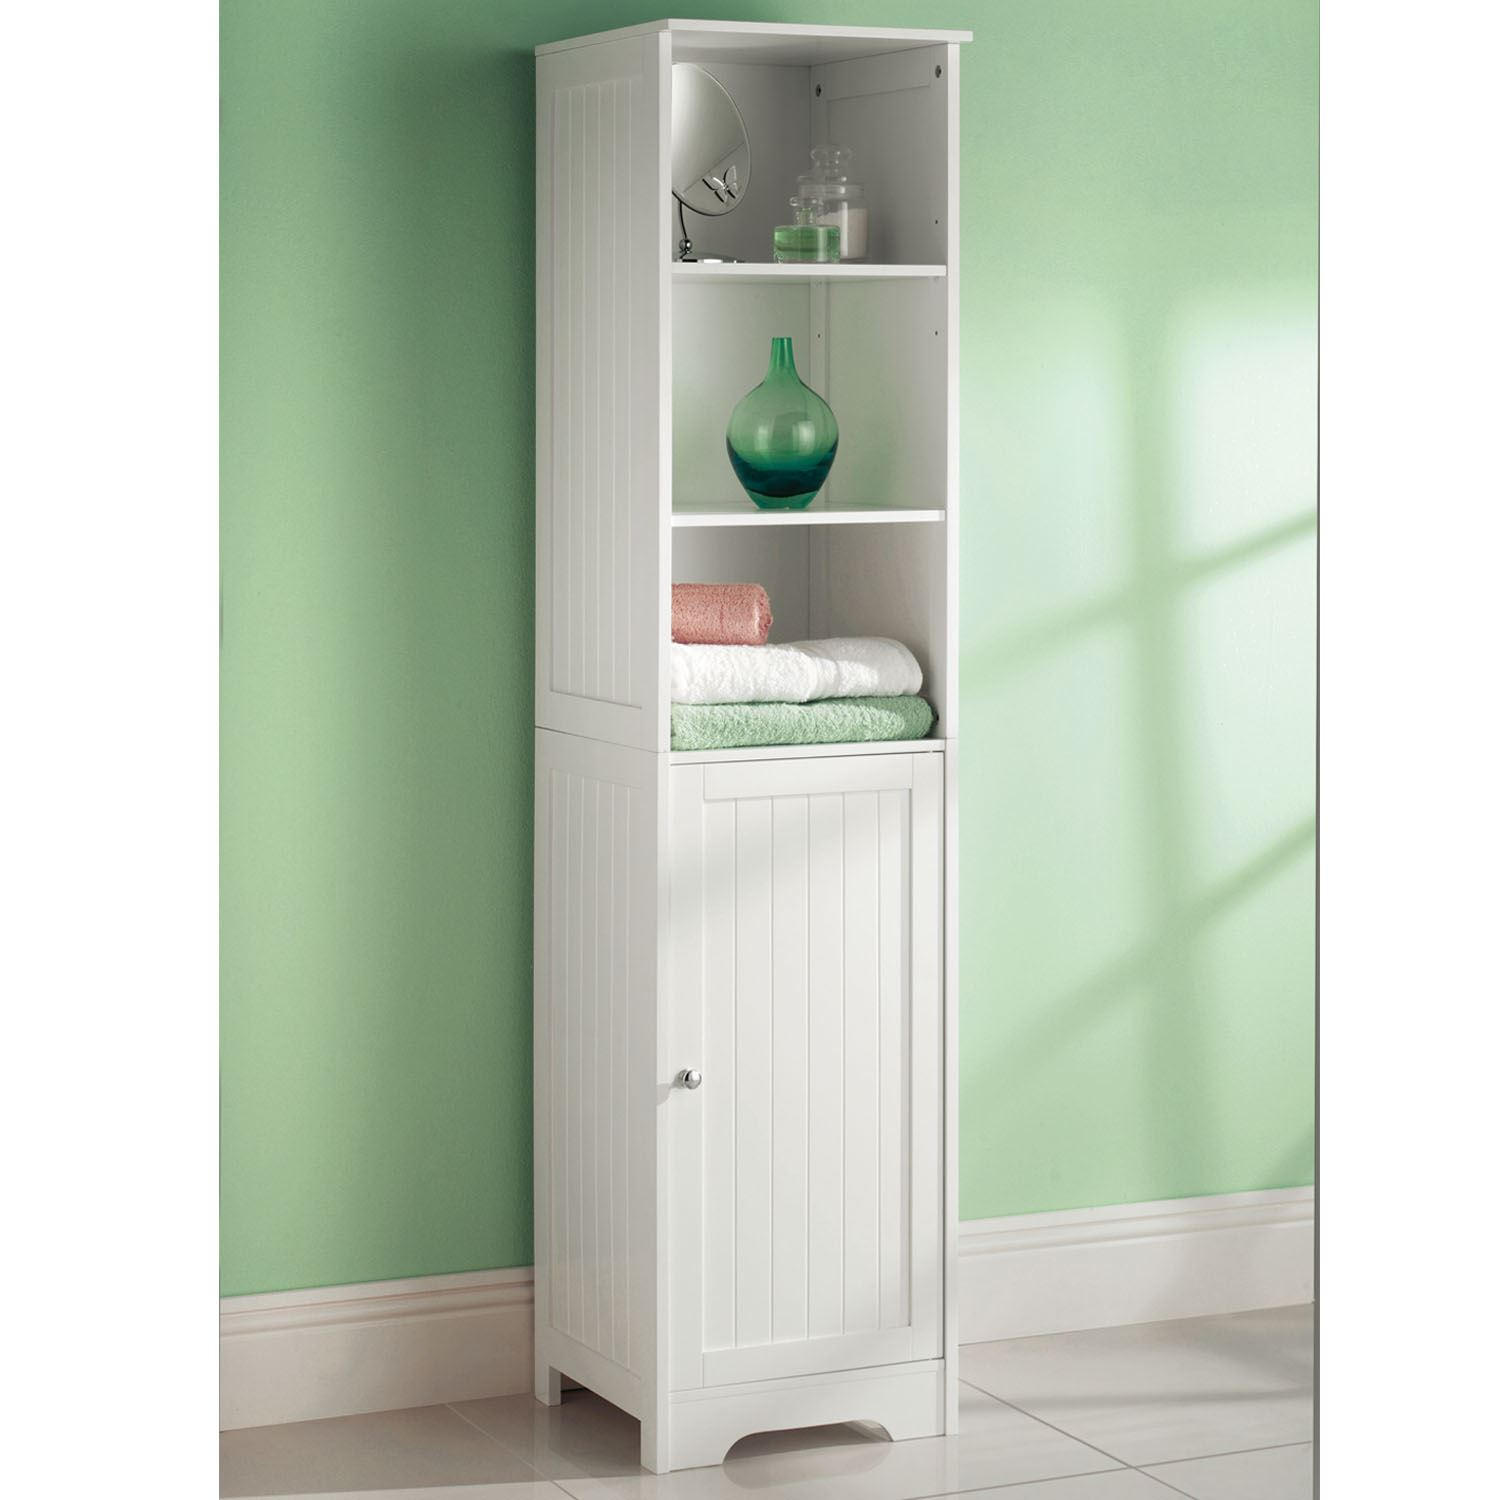 White wooden bathroom cabinet shelf cupboard bedroom storage unit free standing Wooden bathroom furniture cabinets